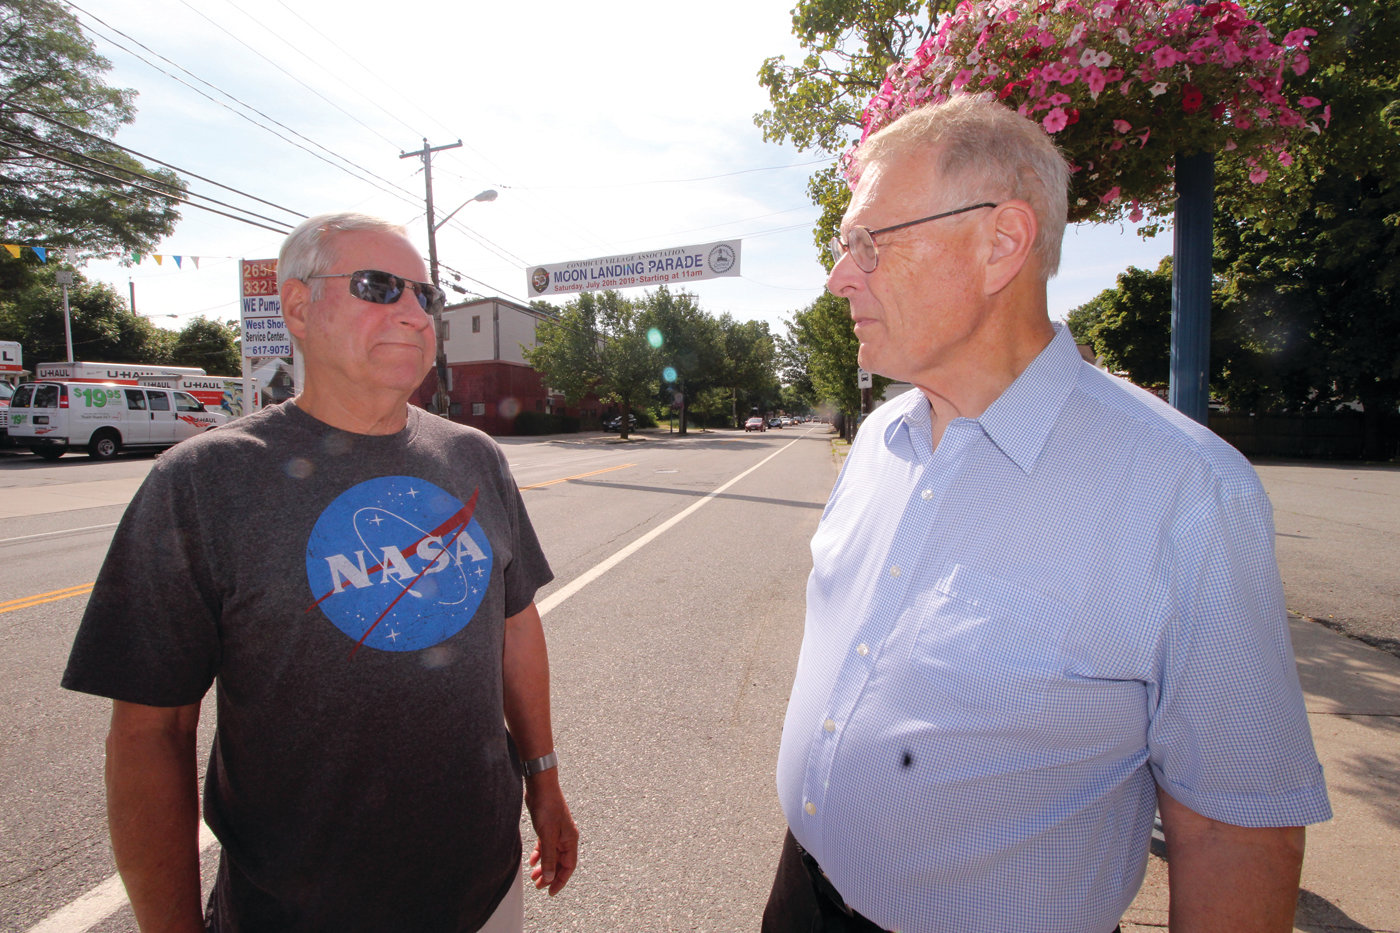 ON THEIR WAY TO A PARADE: Lonnie Barham and Doug Ray have been planning the 50th anniversary lunar landing parade for the past two years. Their intent is not only to commemorate the historic achievement but to also shine a light on Conimicut Village.